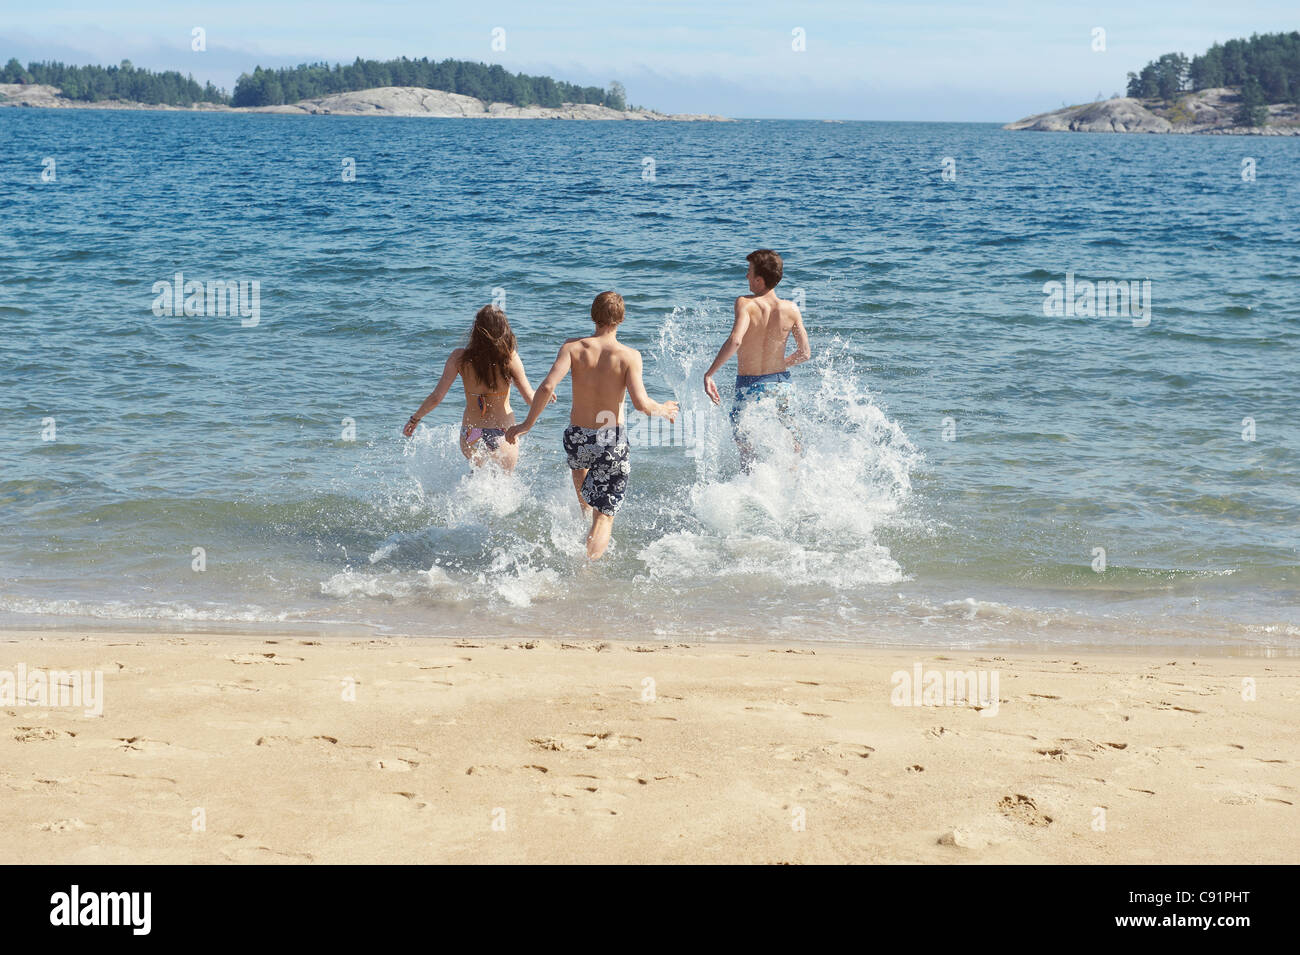 Friends running into ocean on beach - Stock Image